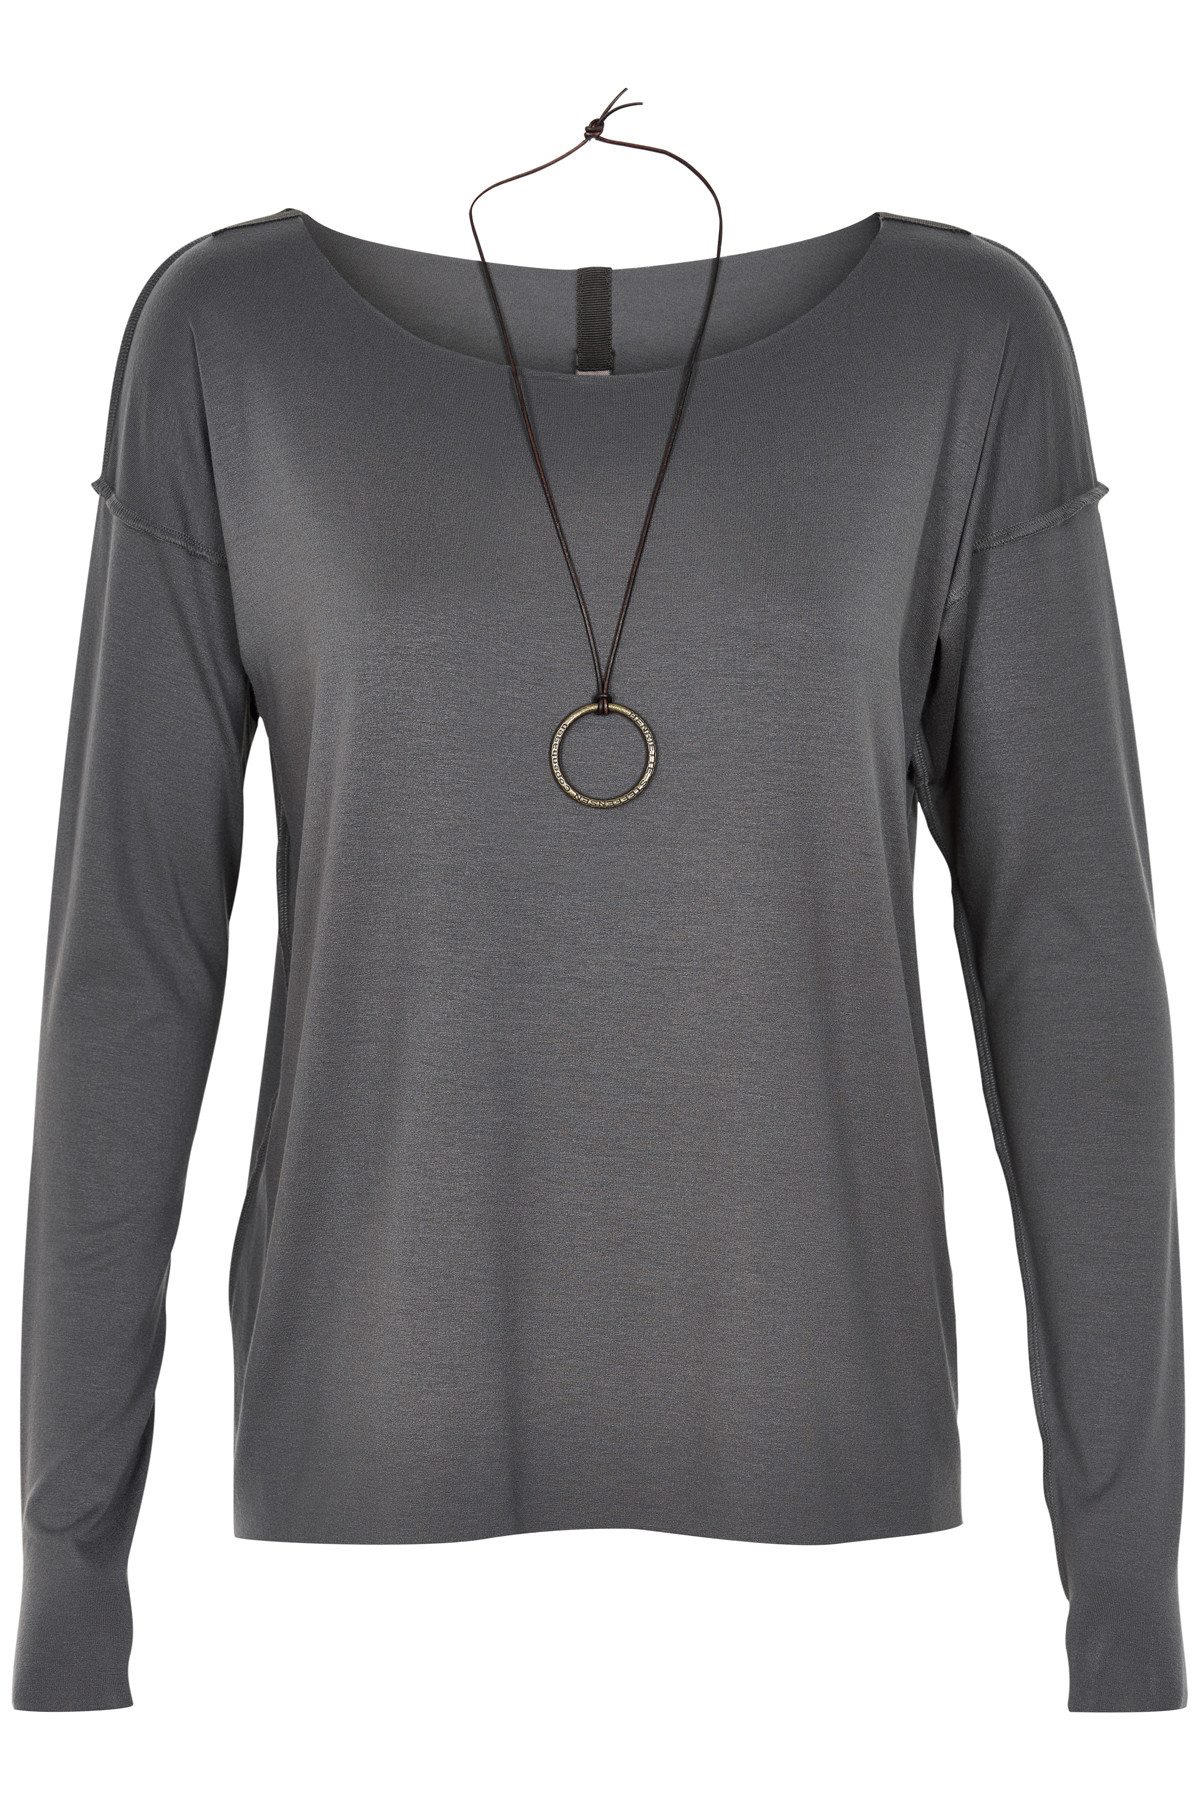 Image of   HENRIETTE STEFFENSEN Copenhagen 6014 BLUSE W. NECKLACE GREY (Grey, XL)